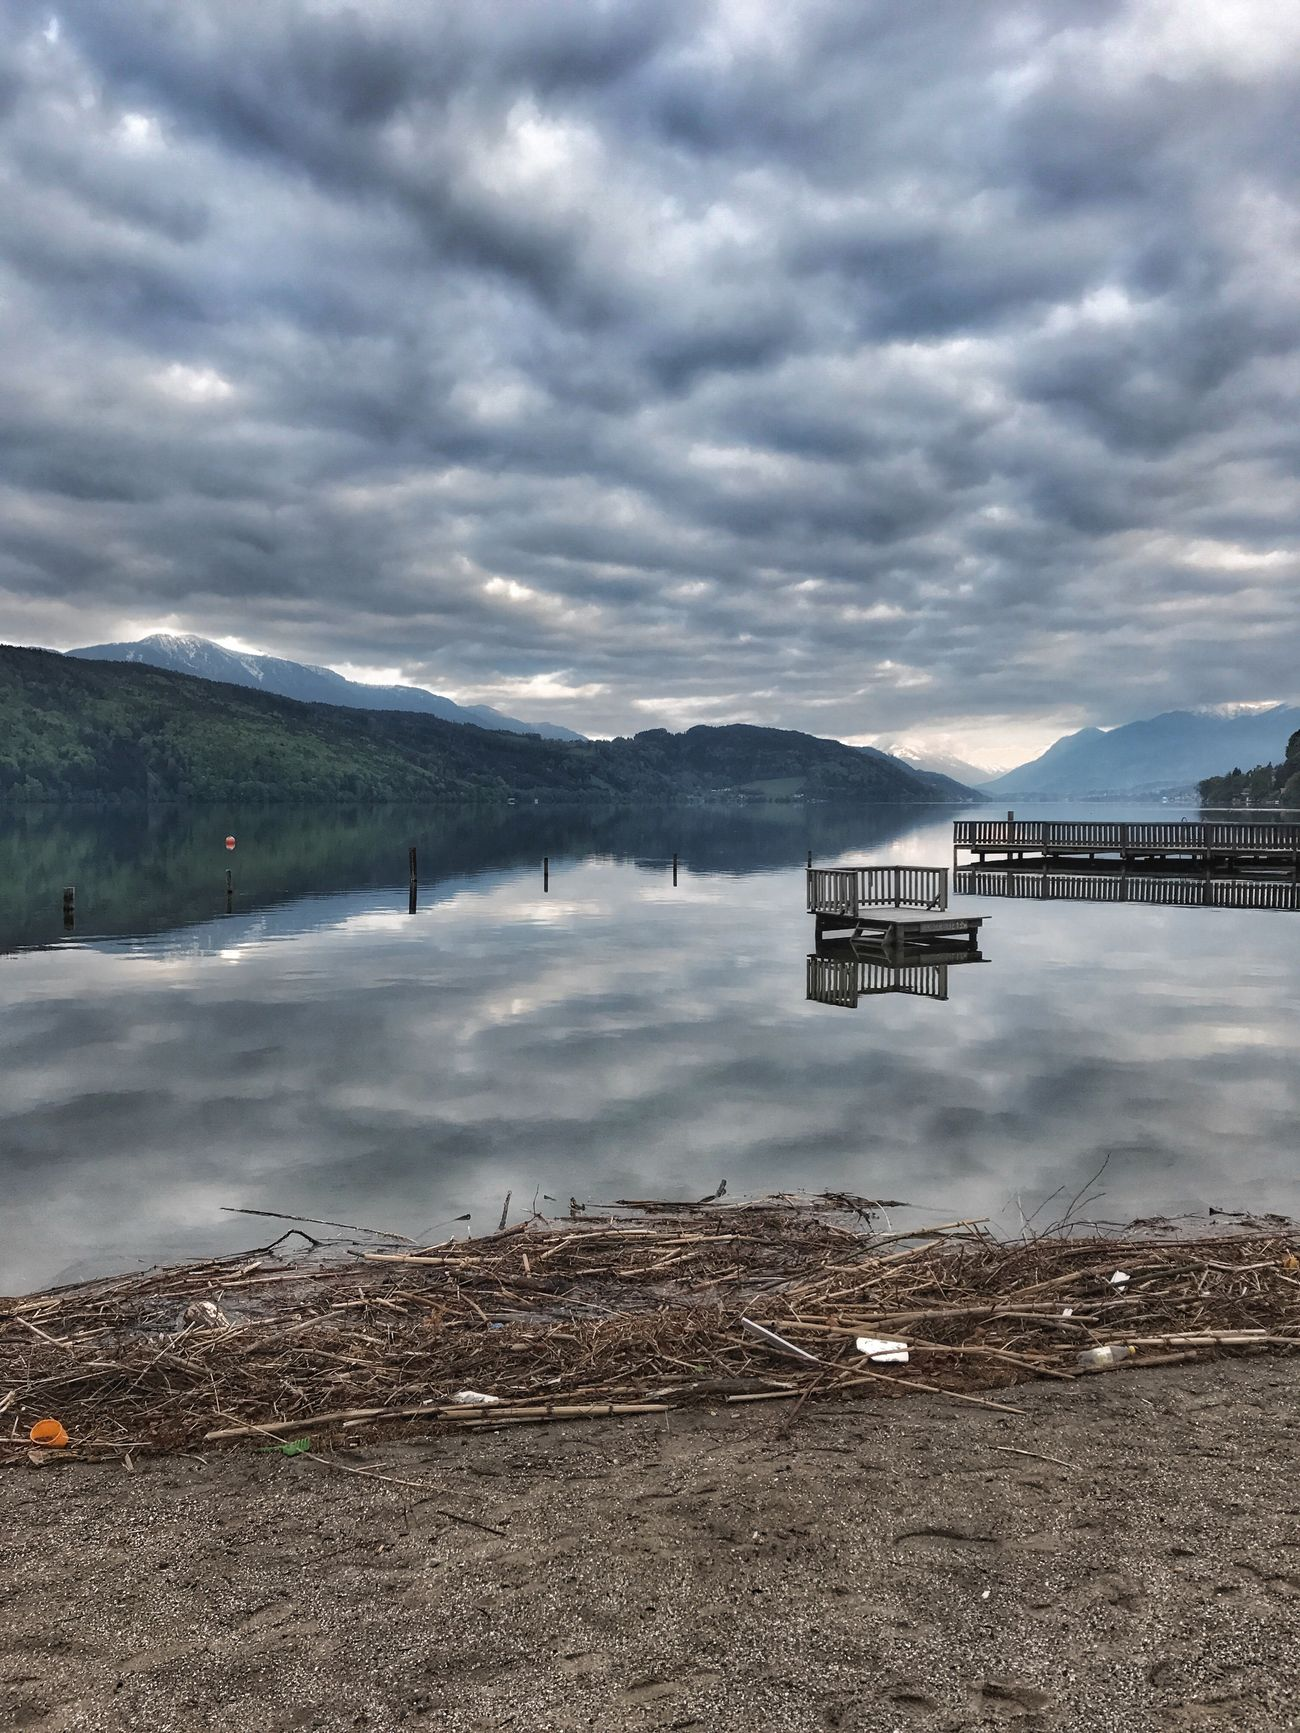 Cloudy Sky Lake View Lakeshore Driftwood Millstättersee Döbriach Sand Water Reflections Waterfront Sky And Clouds